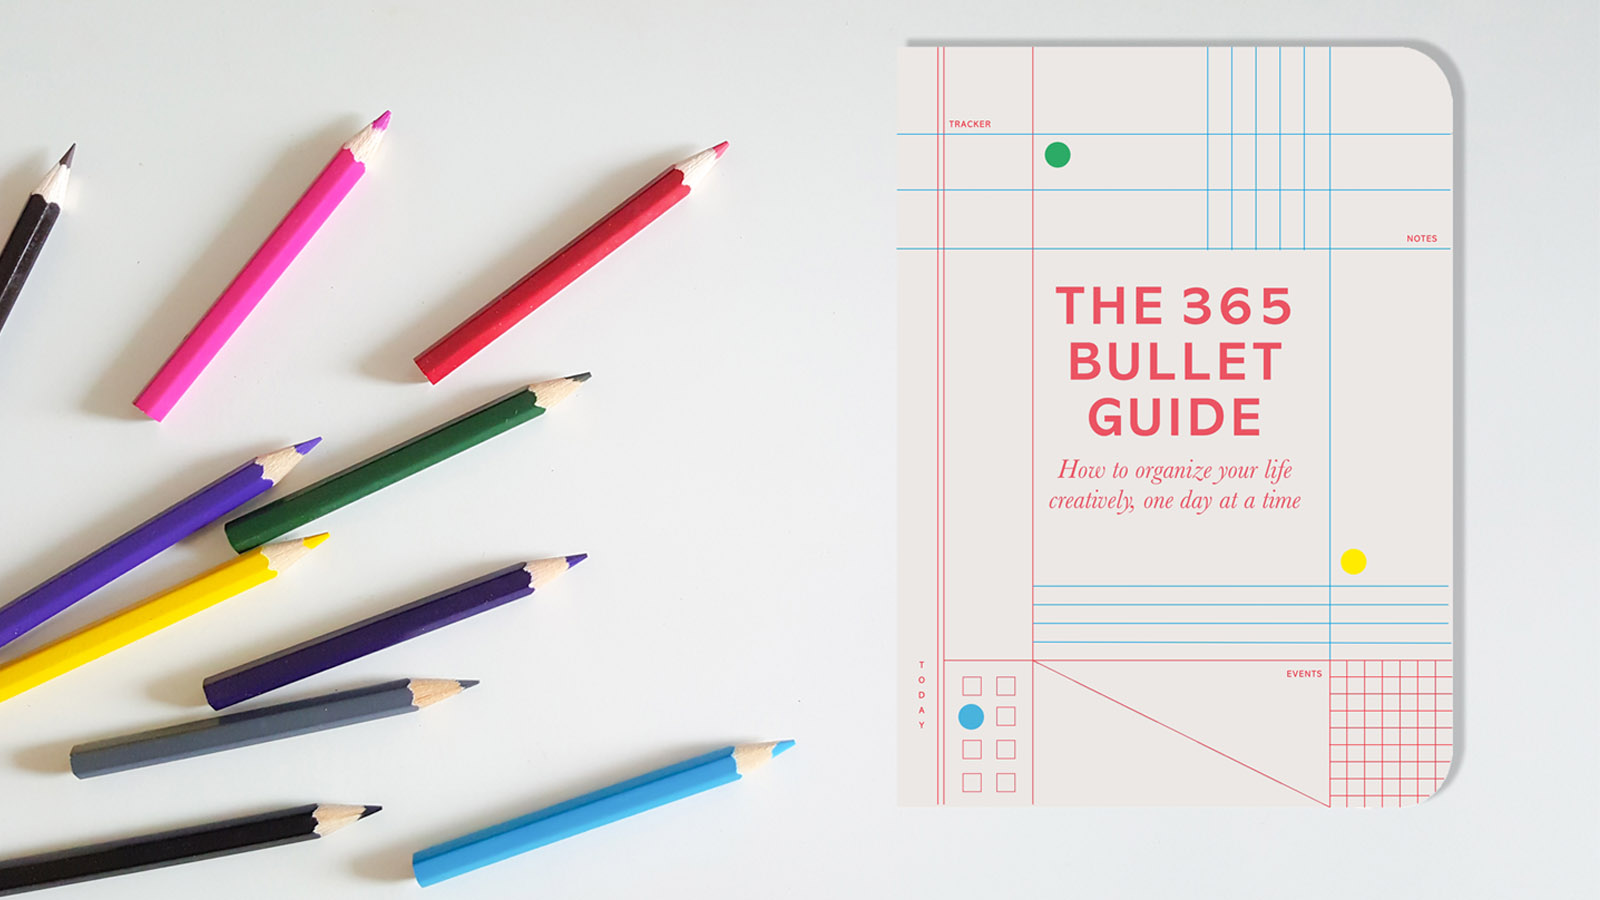 download these free bullet journal 2018 diary emplates for easier daily weekly and monthly planning in 2018 from the 365 bullet guide